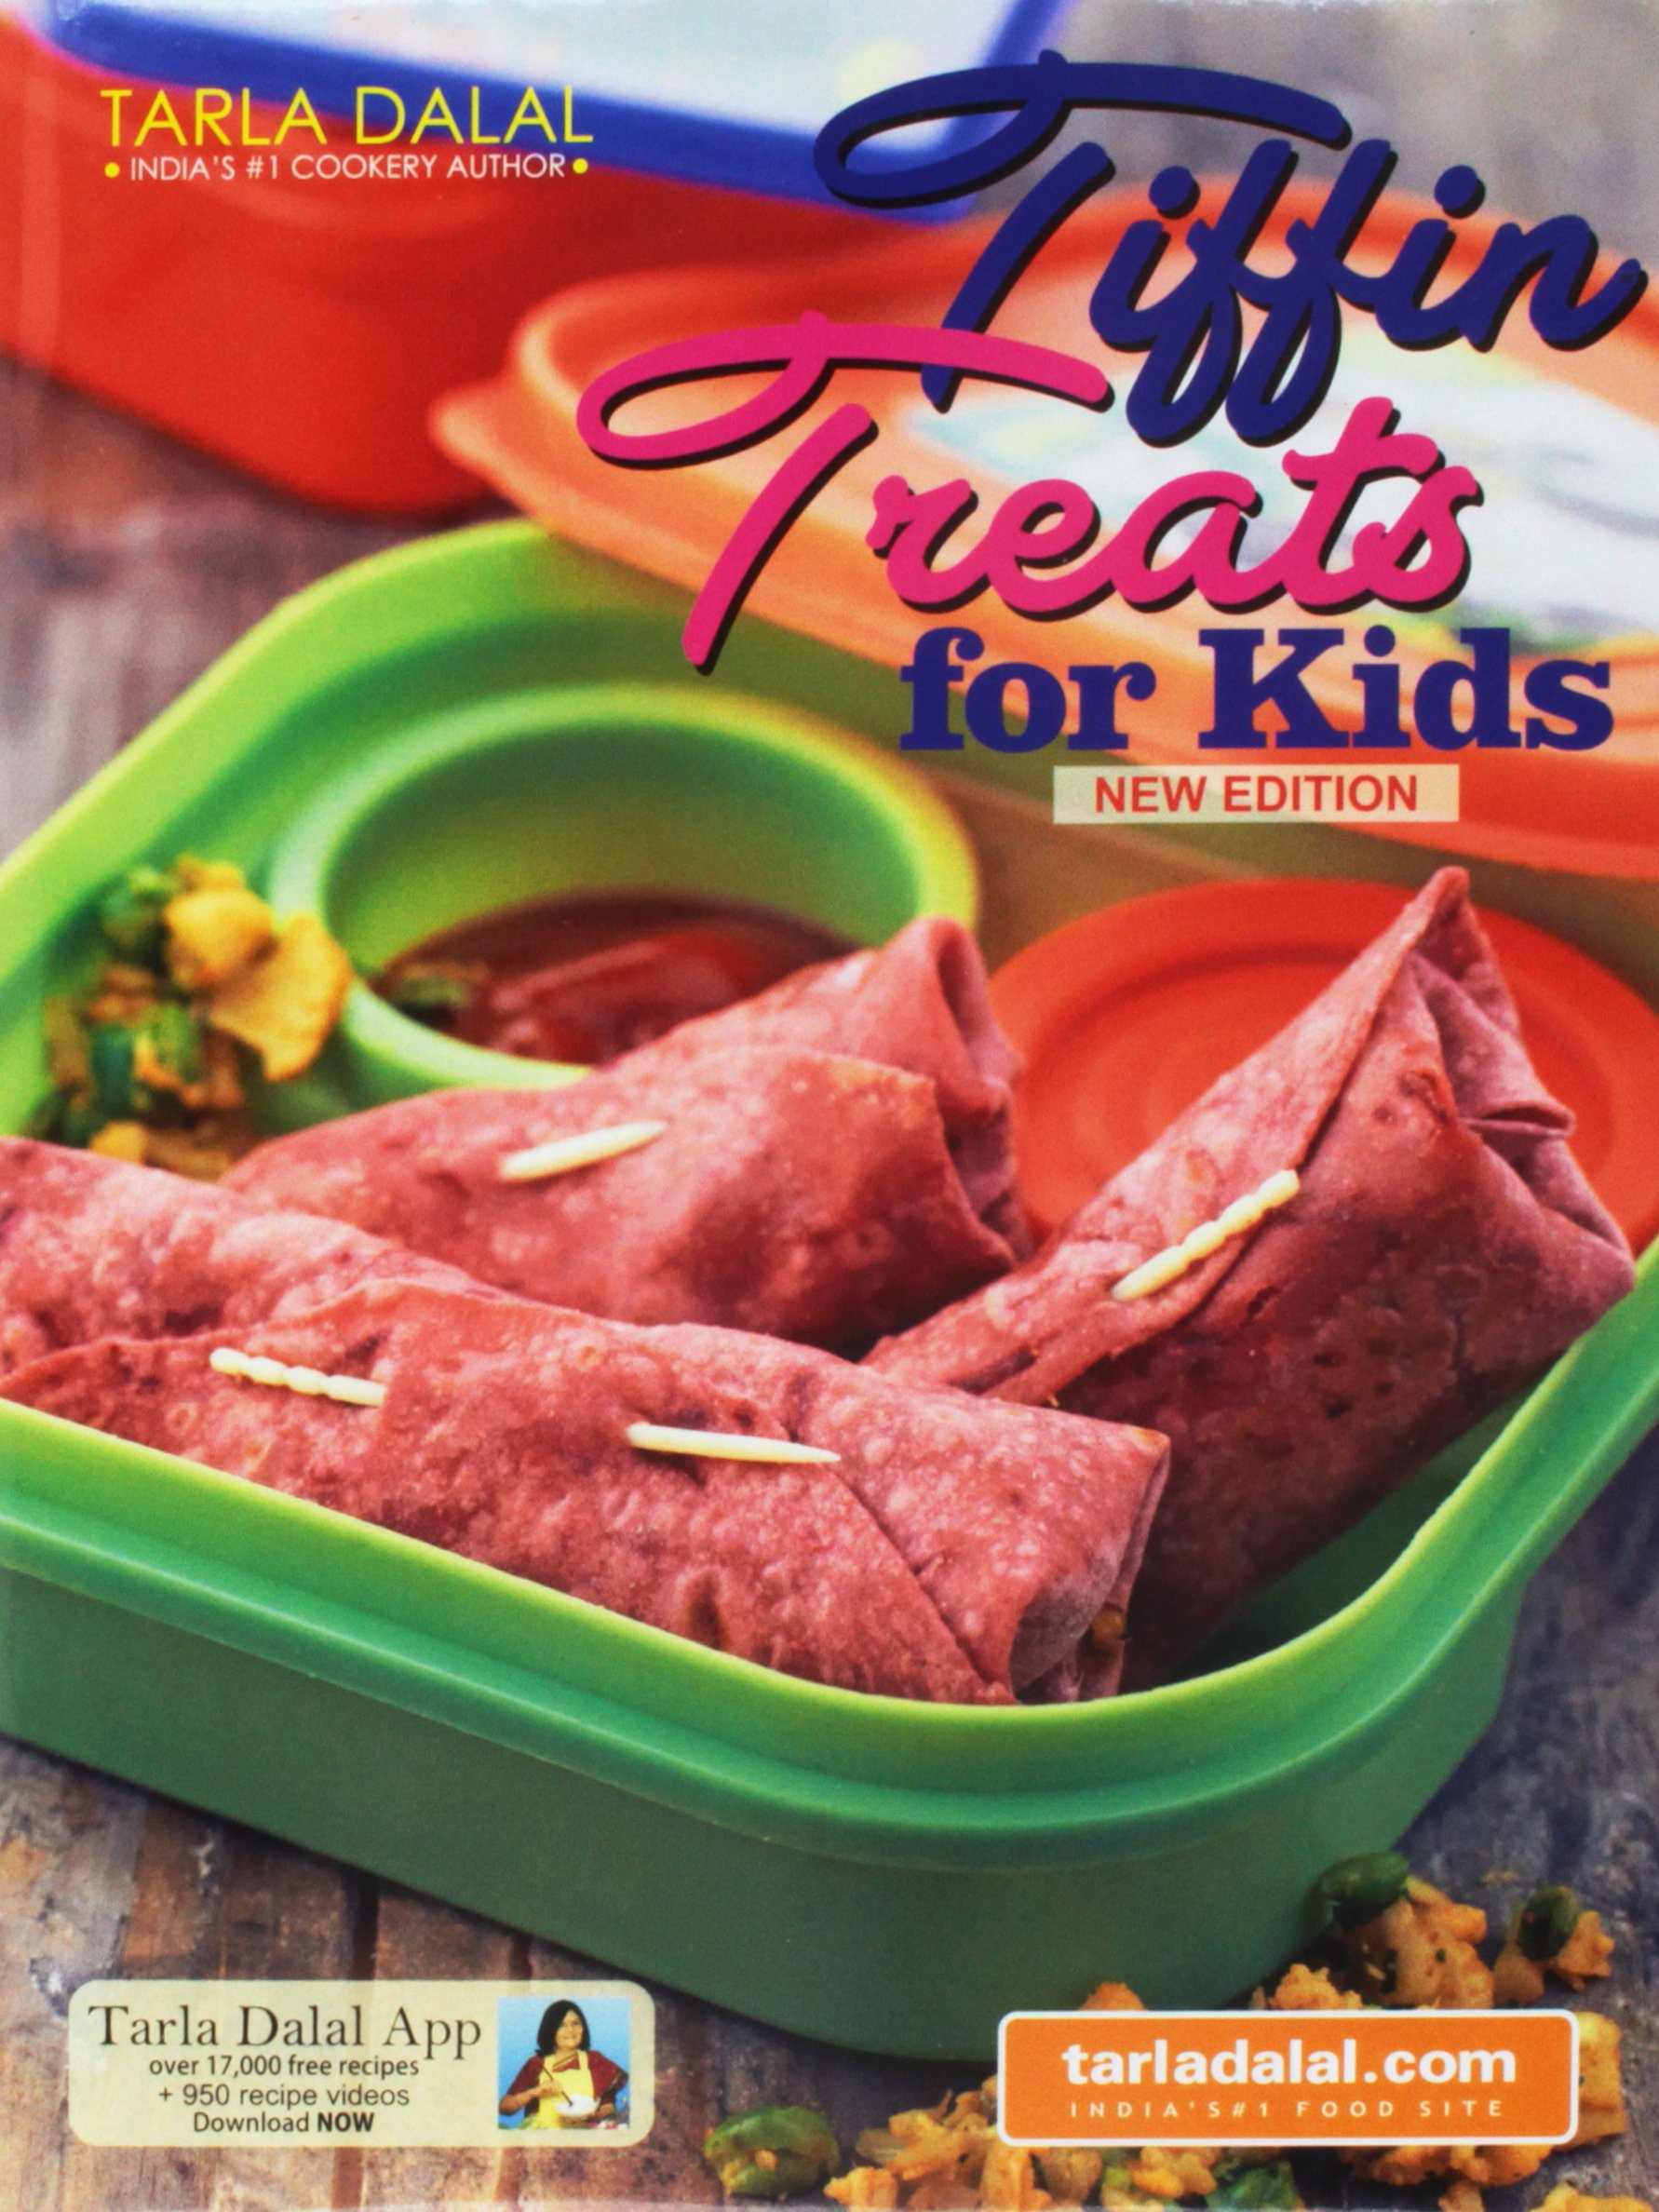 Buy tiffin treats for kids book online at low prices in india buy tiffin treats for kids book online at low prices in india tiffin treats for kids reviews ratings amazon forumfinder Images